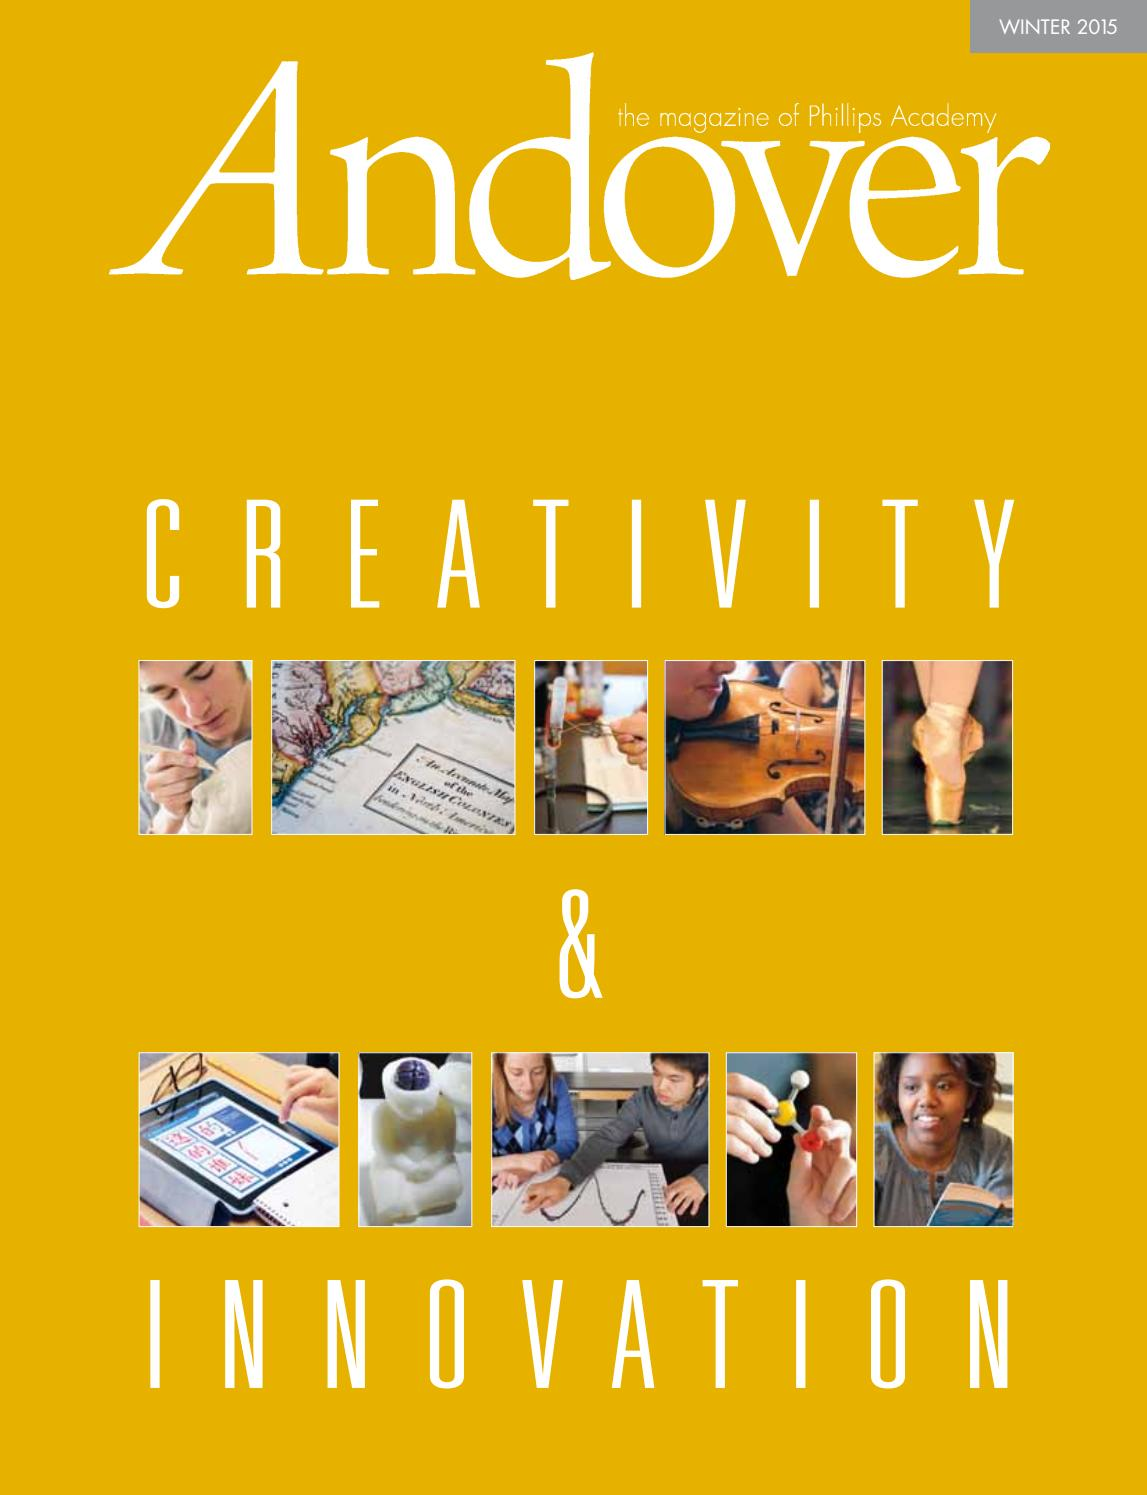 Andover magazine  Winter 2015 by Phillips Academy  Issuu